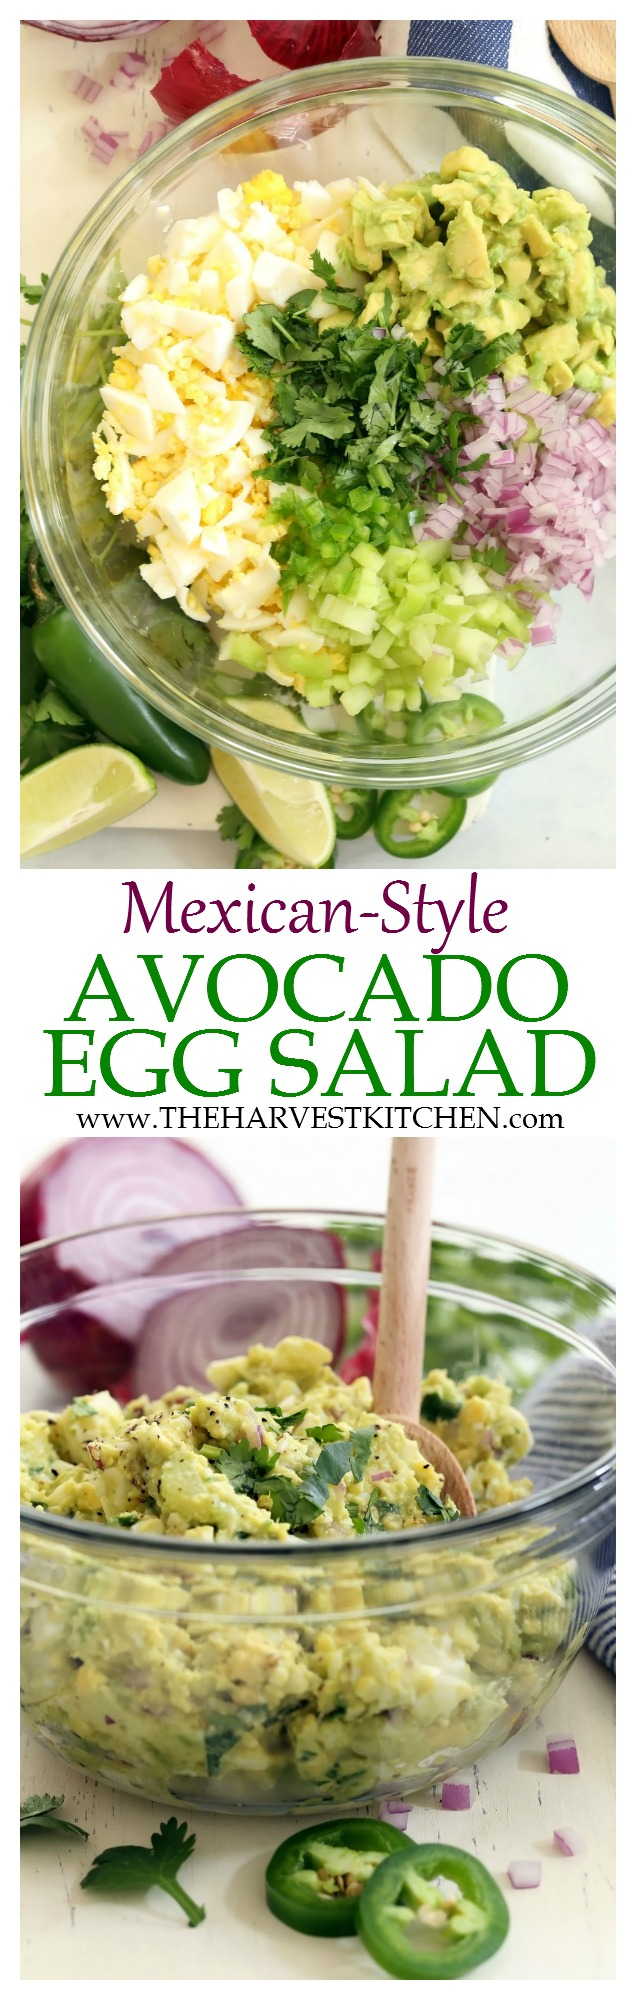 Mexican-style-avocado-egg-salad